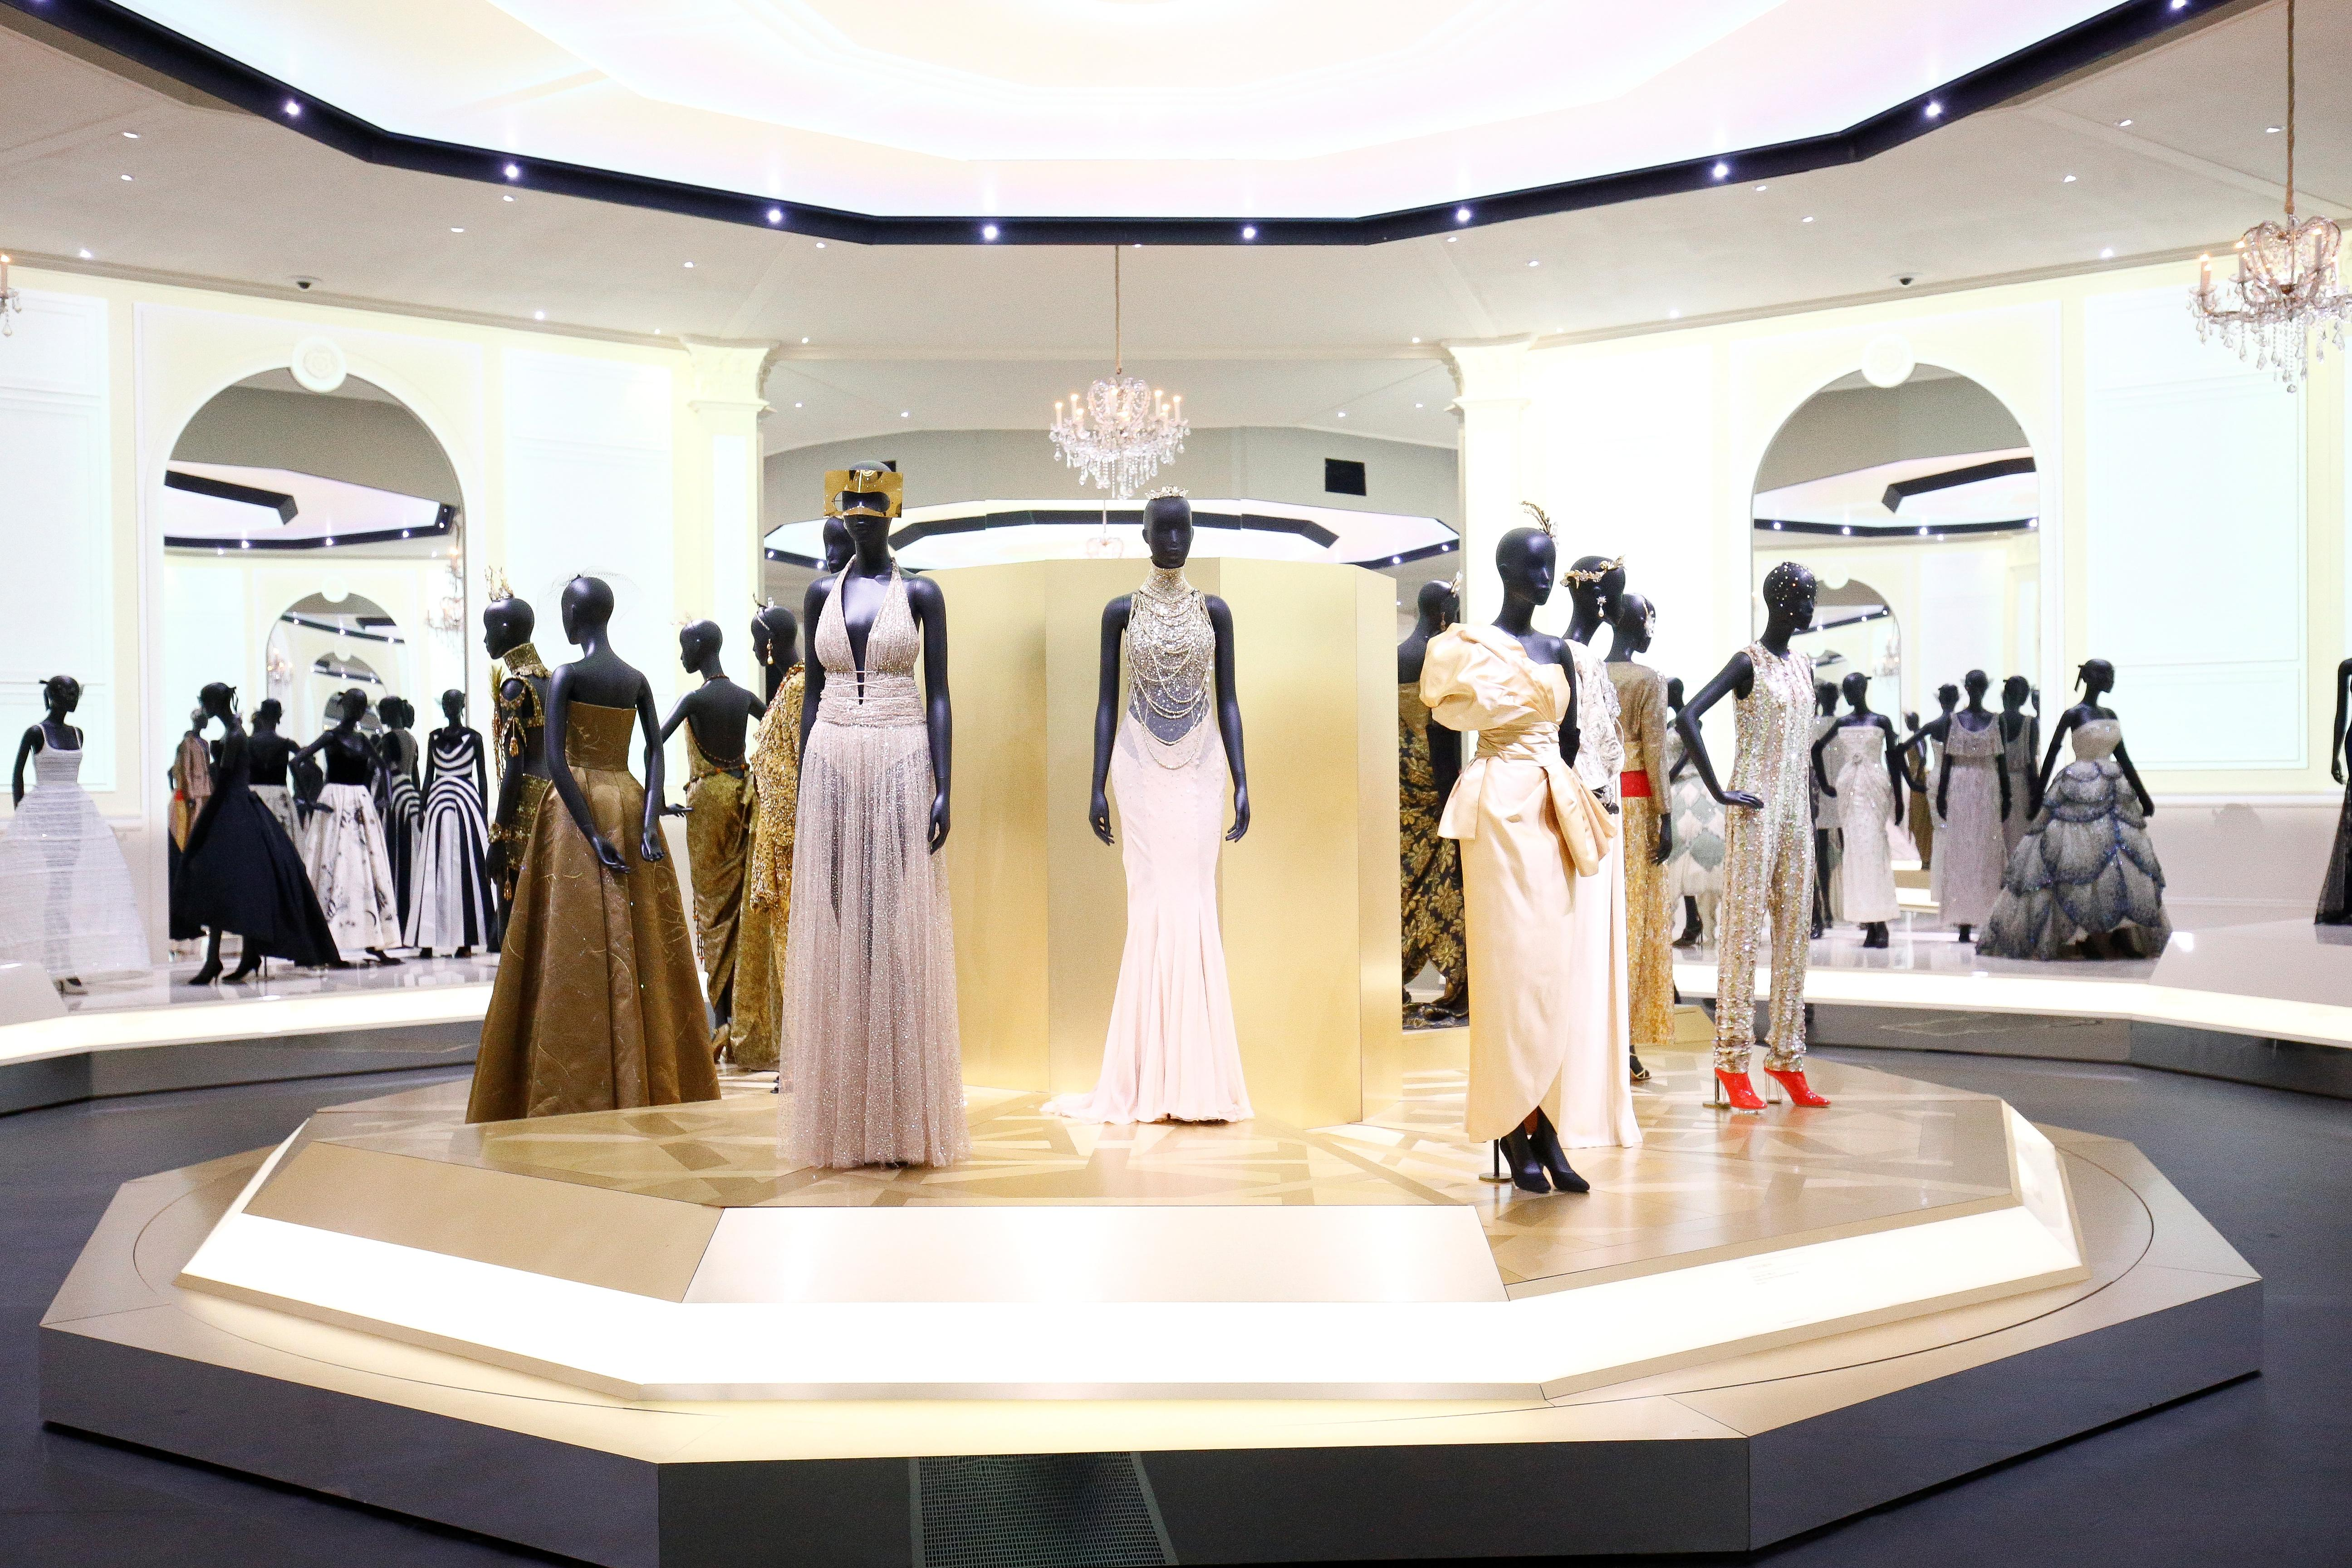 D Exhibition In London : Dior gowns that made headlines star in london exhibition reuters